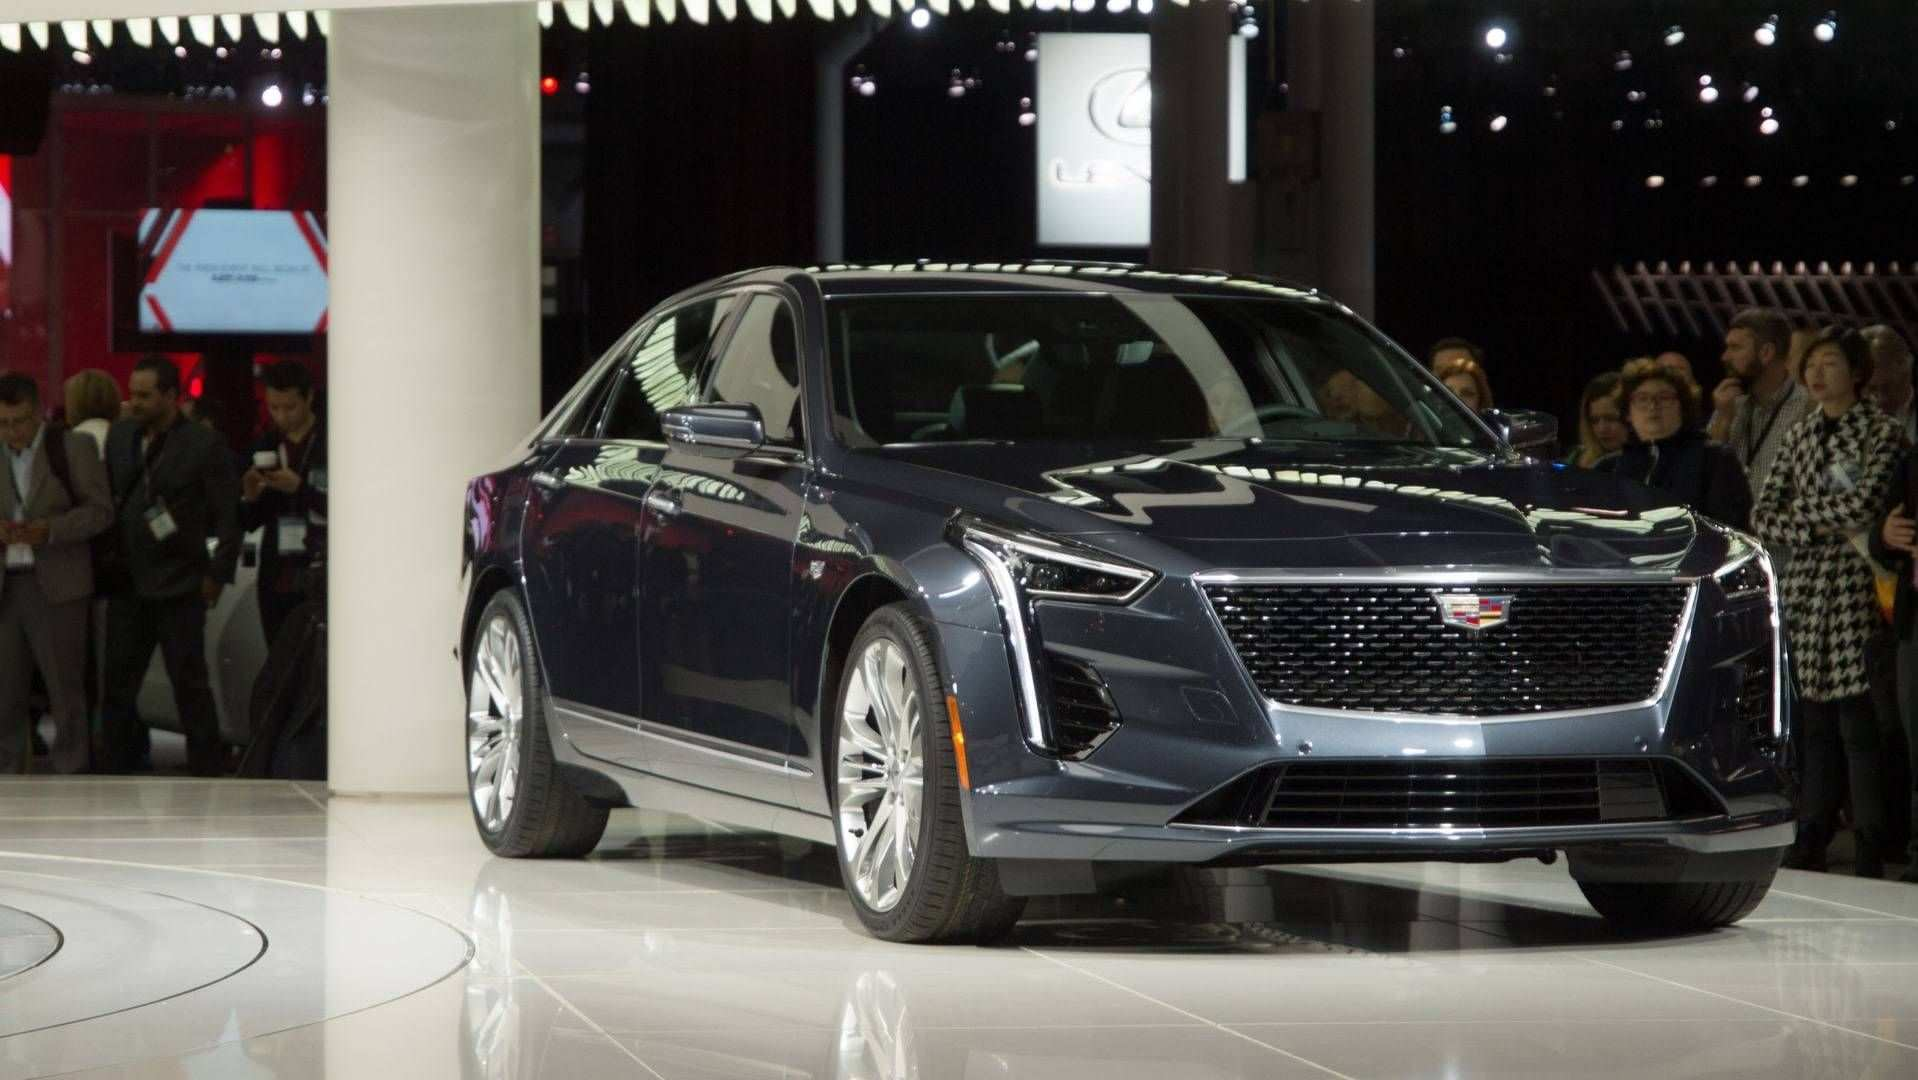 69 The Best Cadillac Ct5 2019 Specs And Review Price with Best Cadillac Ct5 2019 Specs And Review